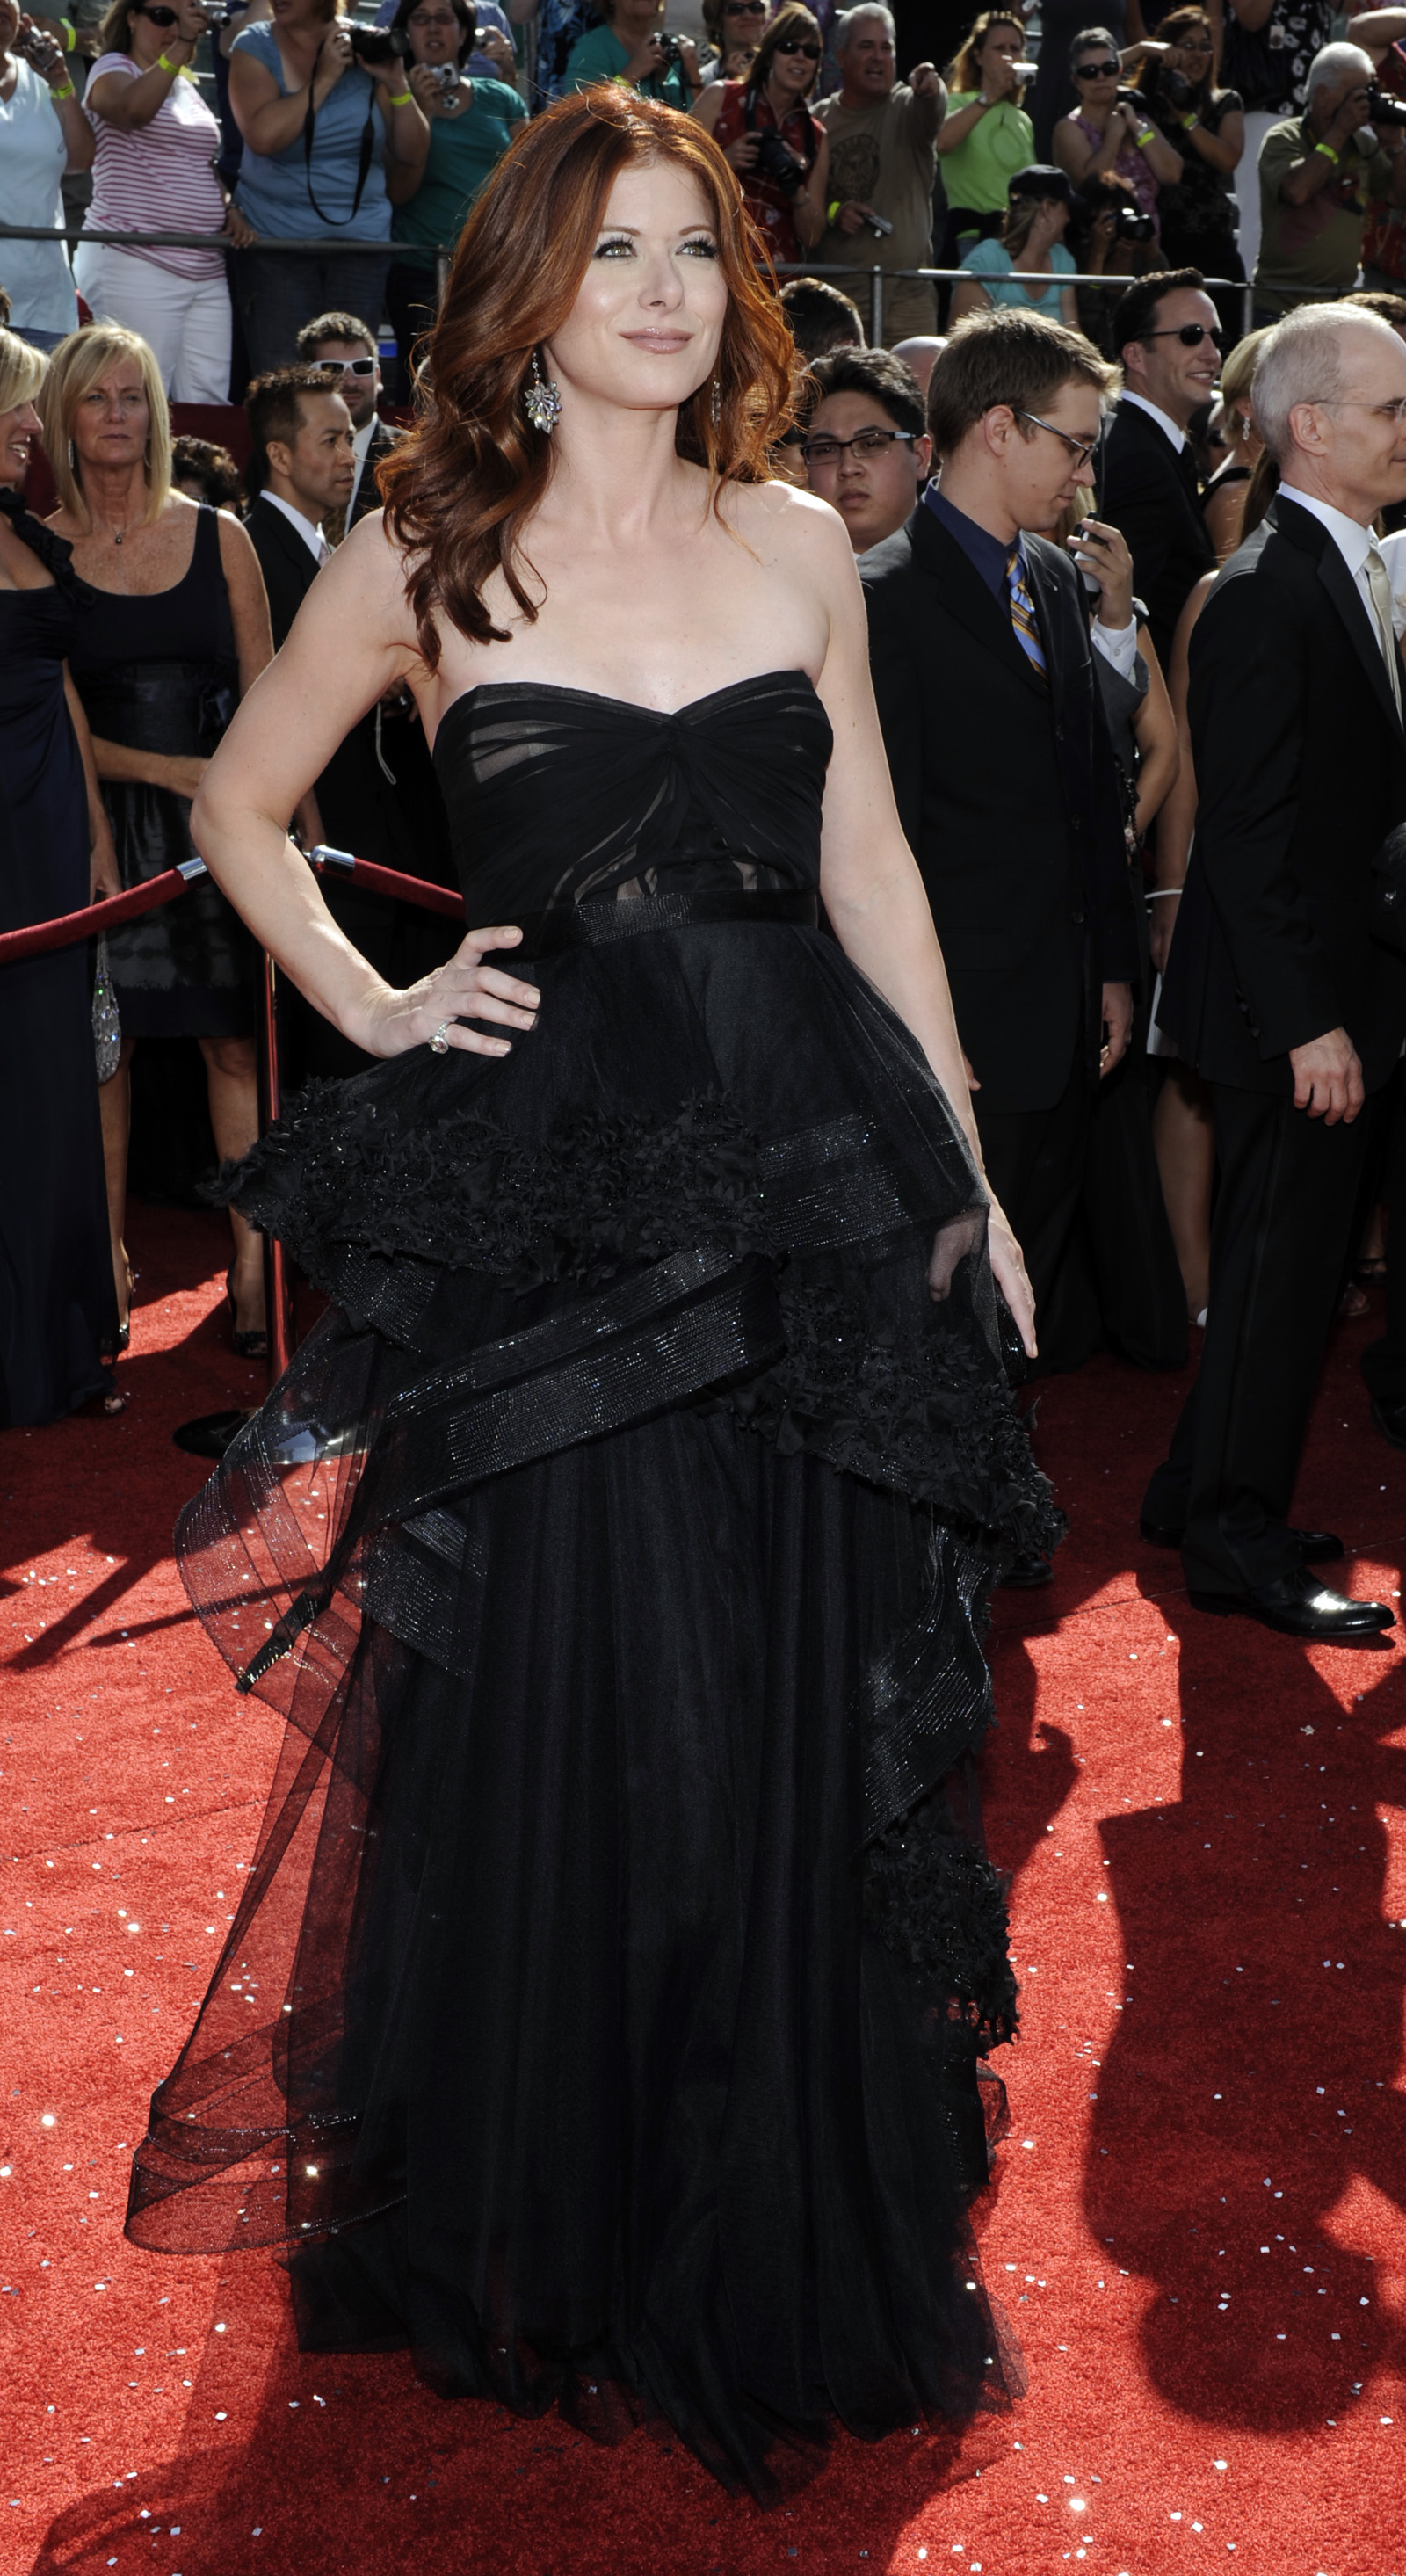 37401_Celebutopia-Debra_Messing_arrives_at_the_60th_Annual_Primetime_Emmy_Awards-01_122_822lo.jpg